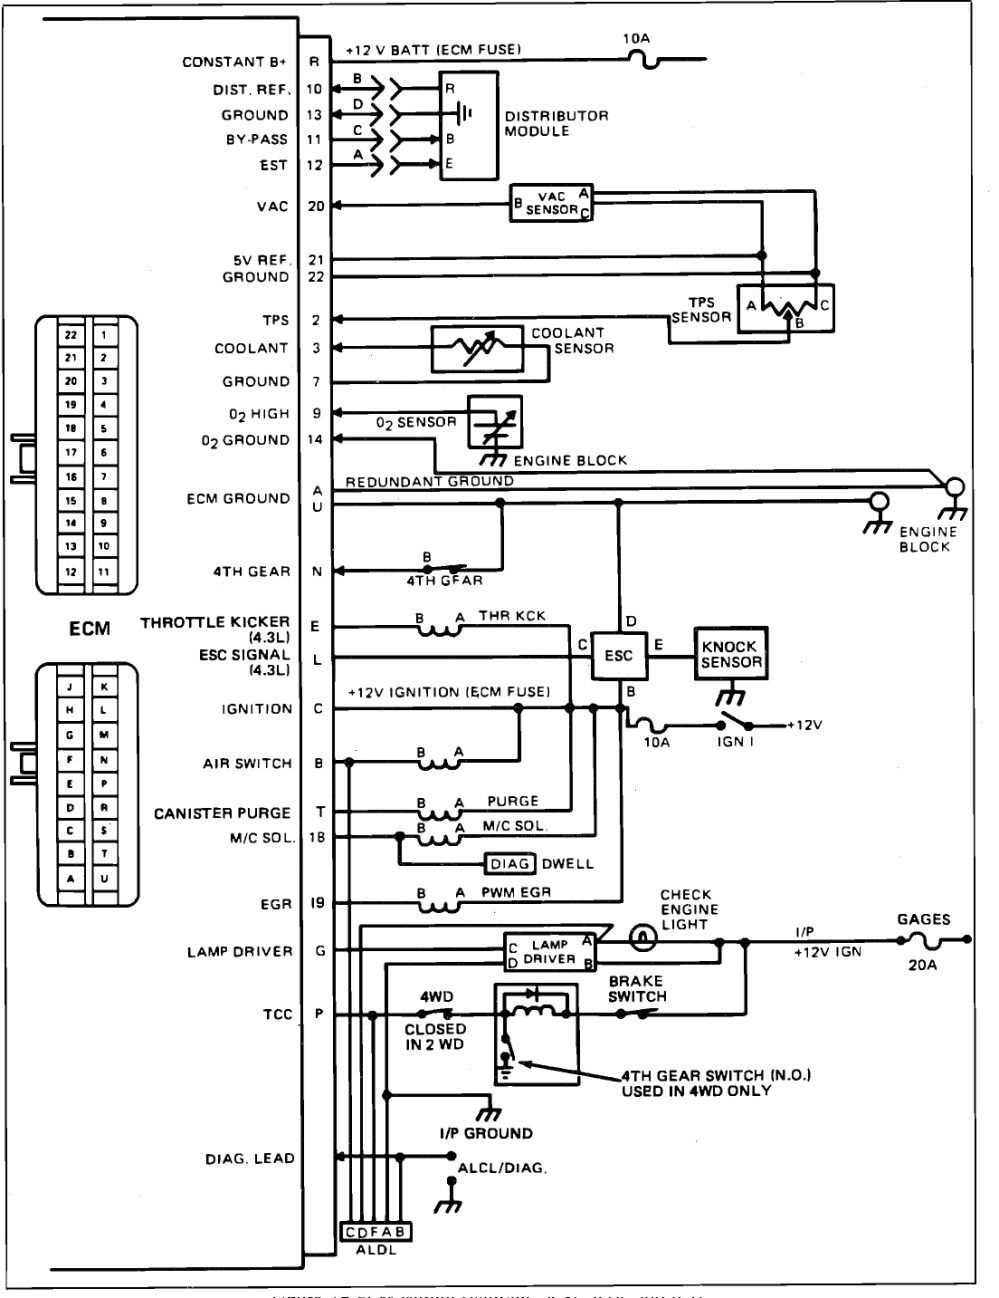 medium resolution of i need a fuse box diagram with wiring colors 93 chevy pickup fuse box diagram fuse